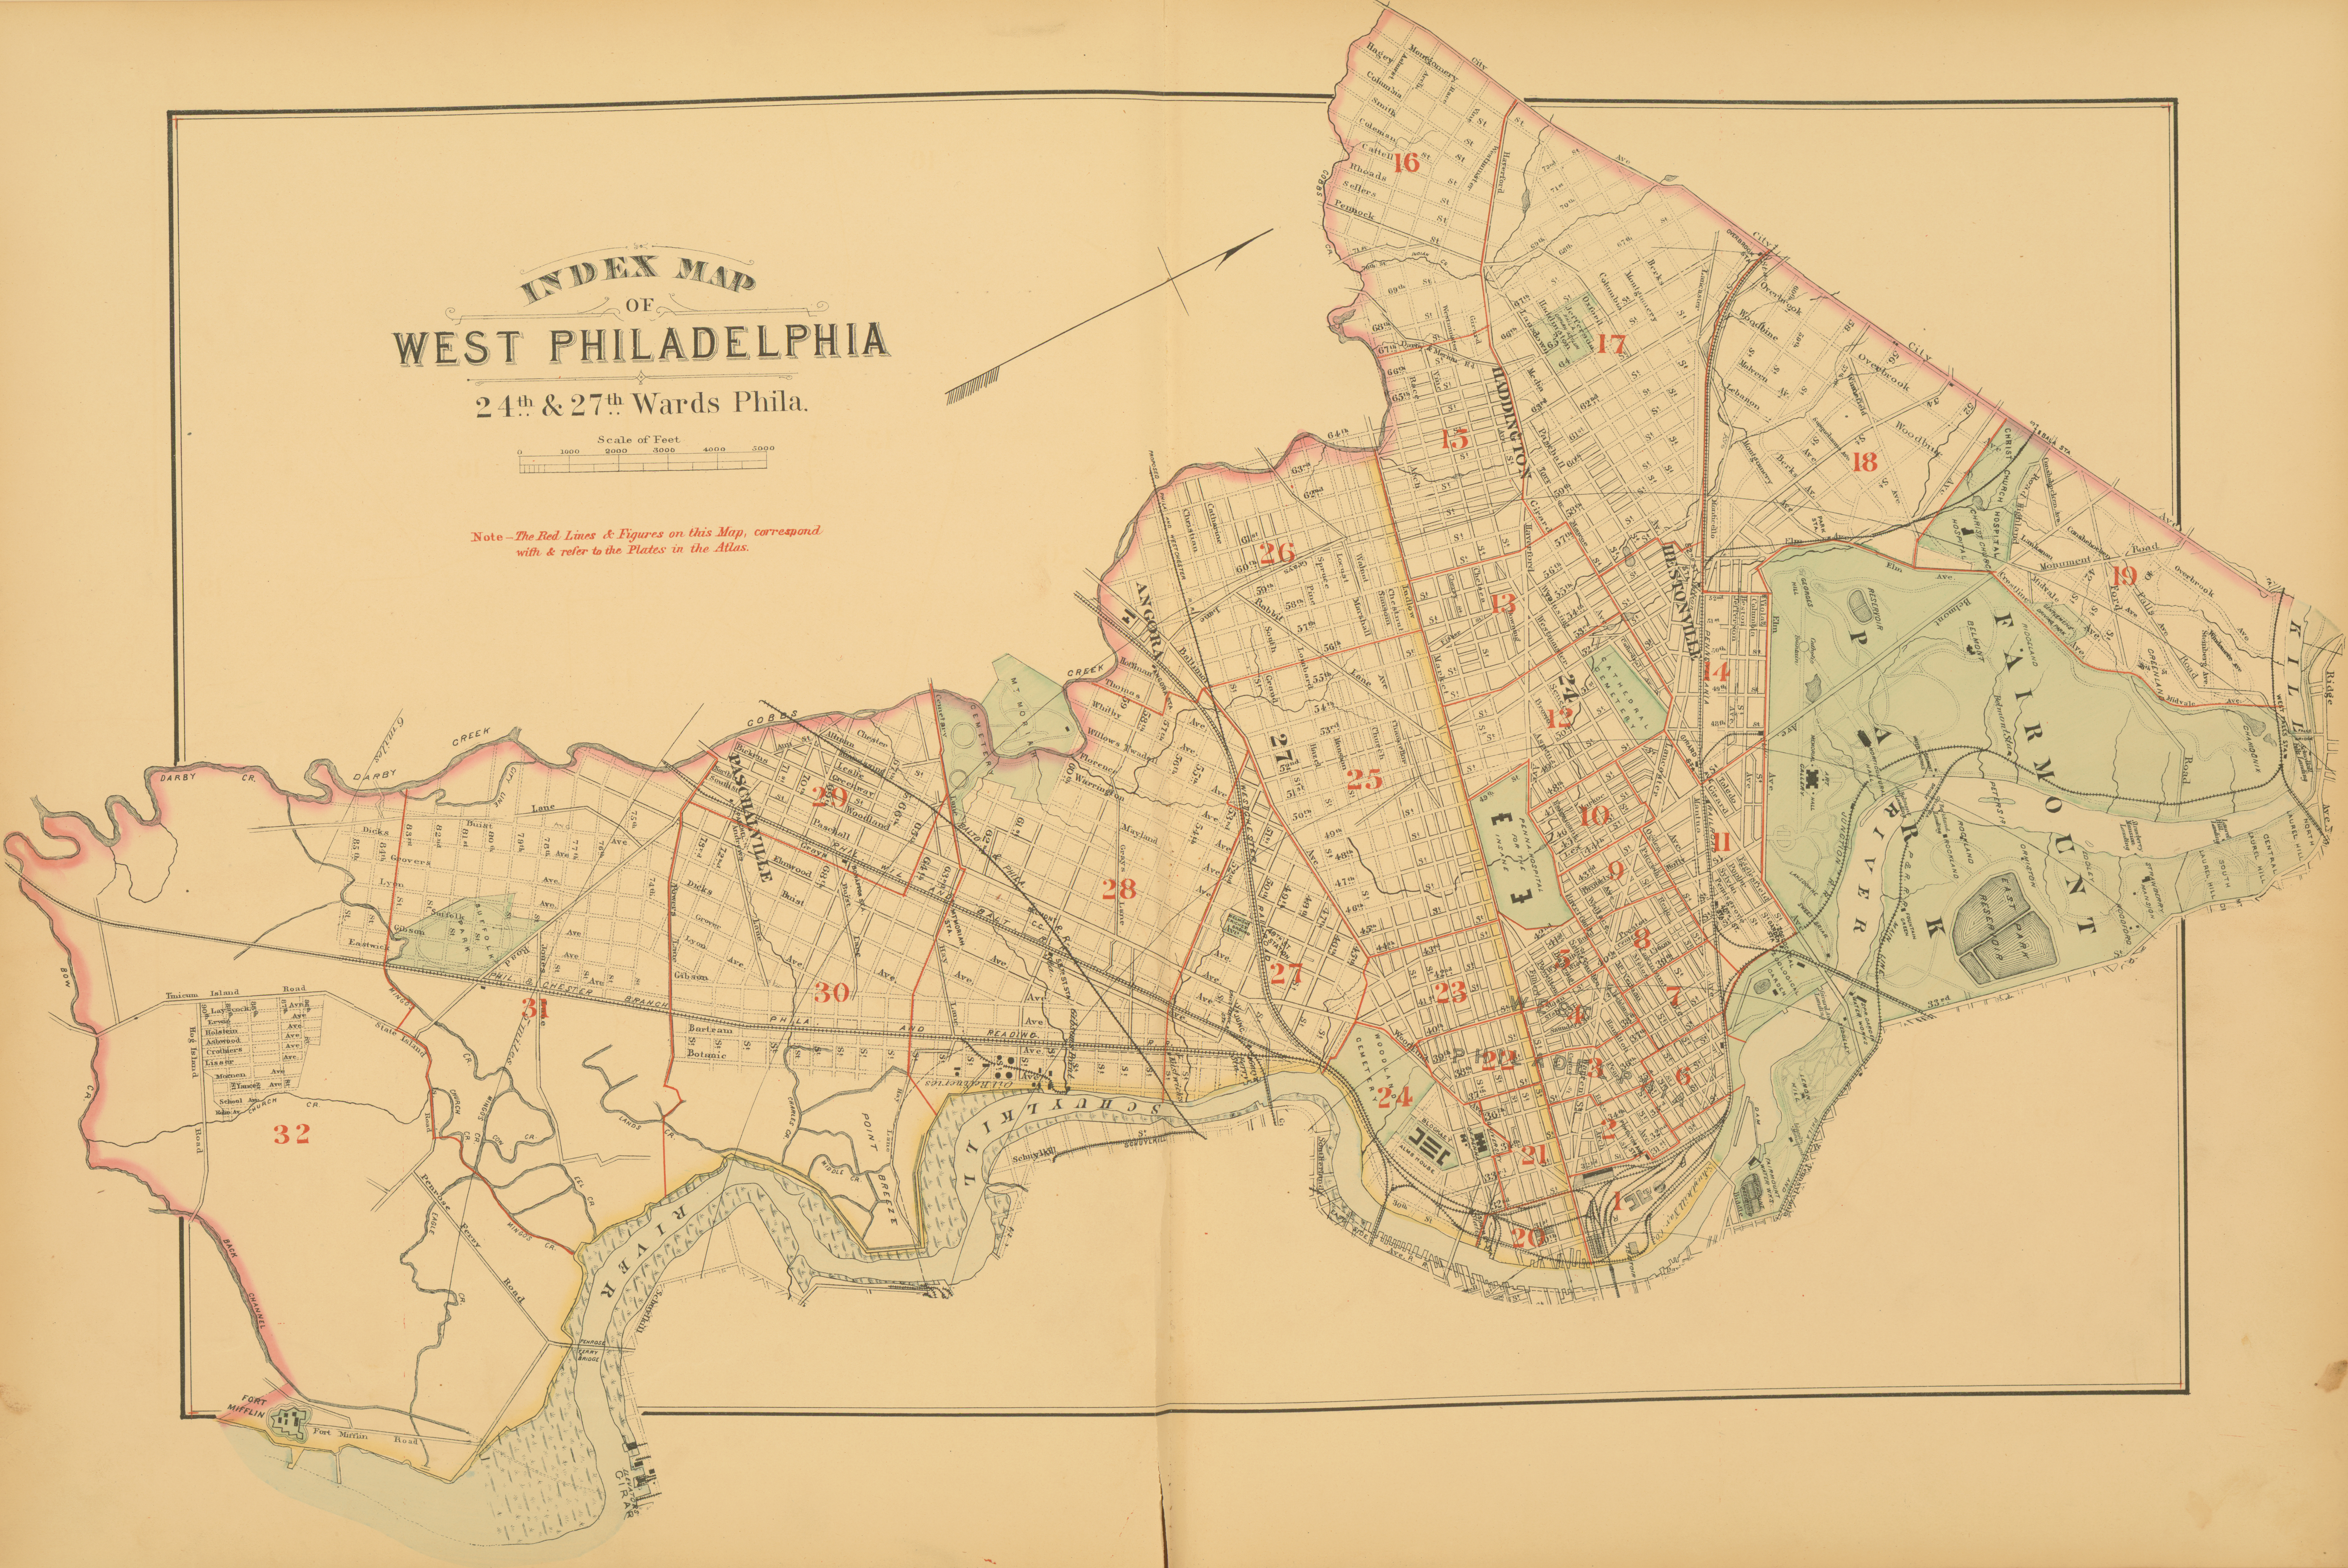 1886 Atlas of the 24th and 27th Wards, West Philadelphia - Index Map